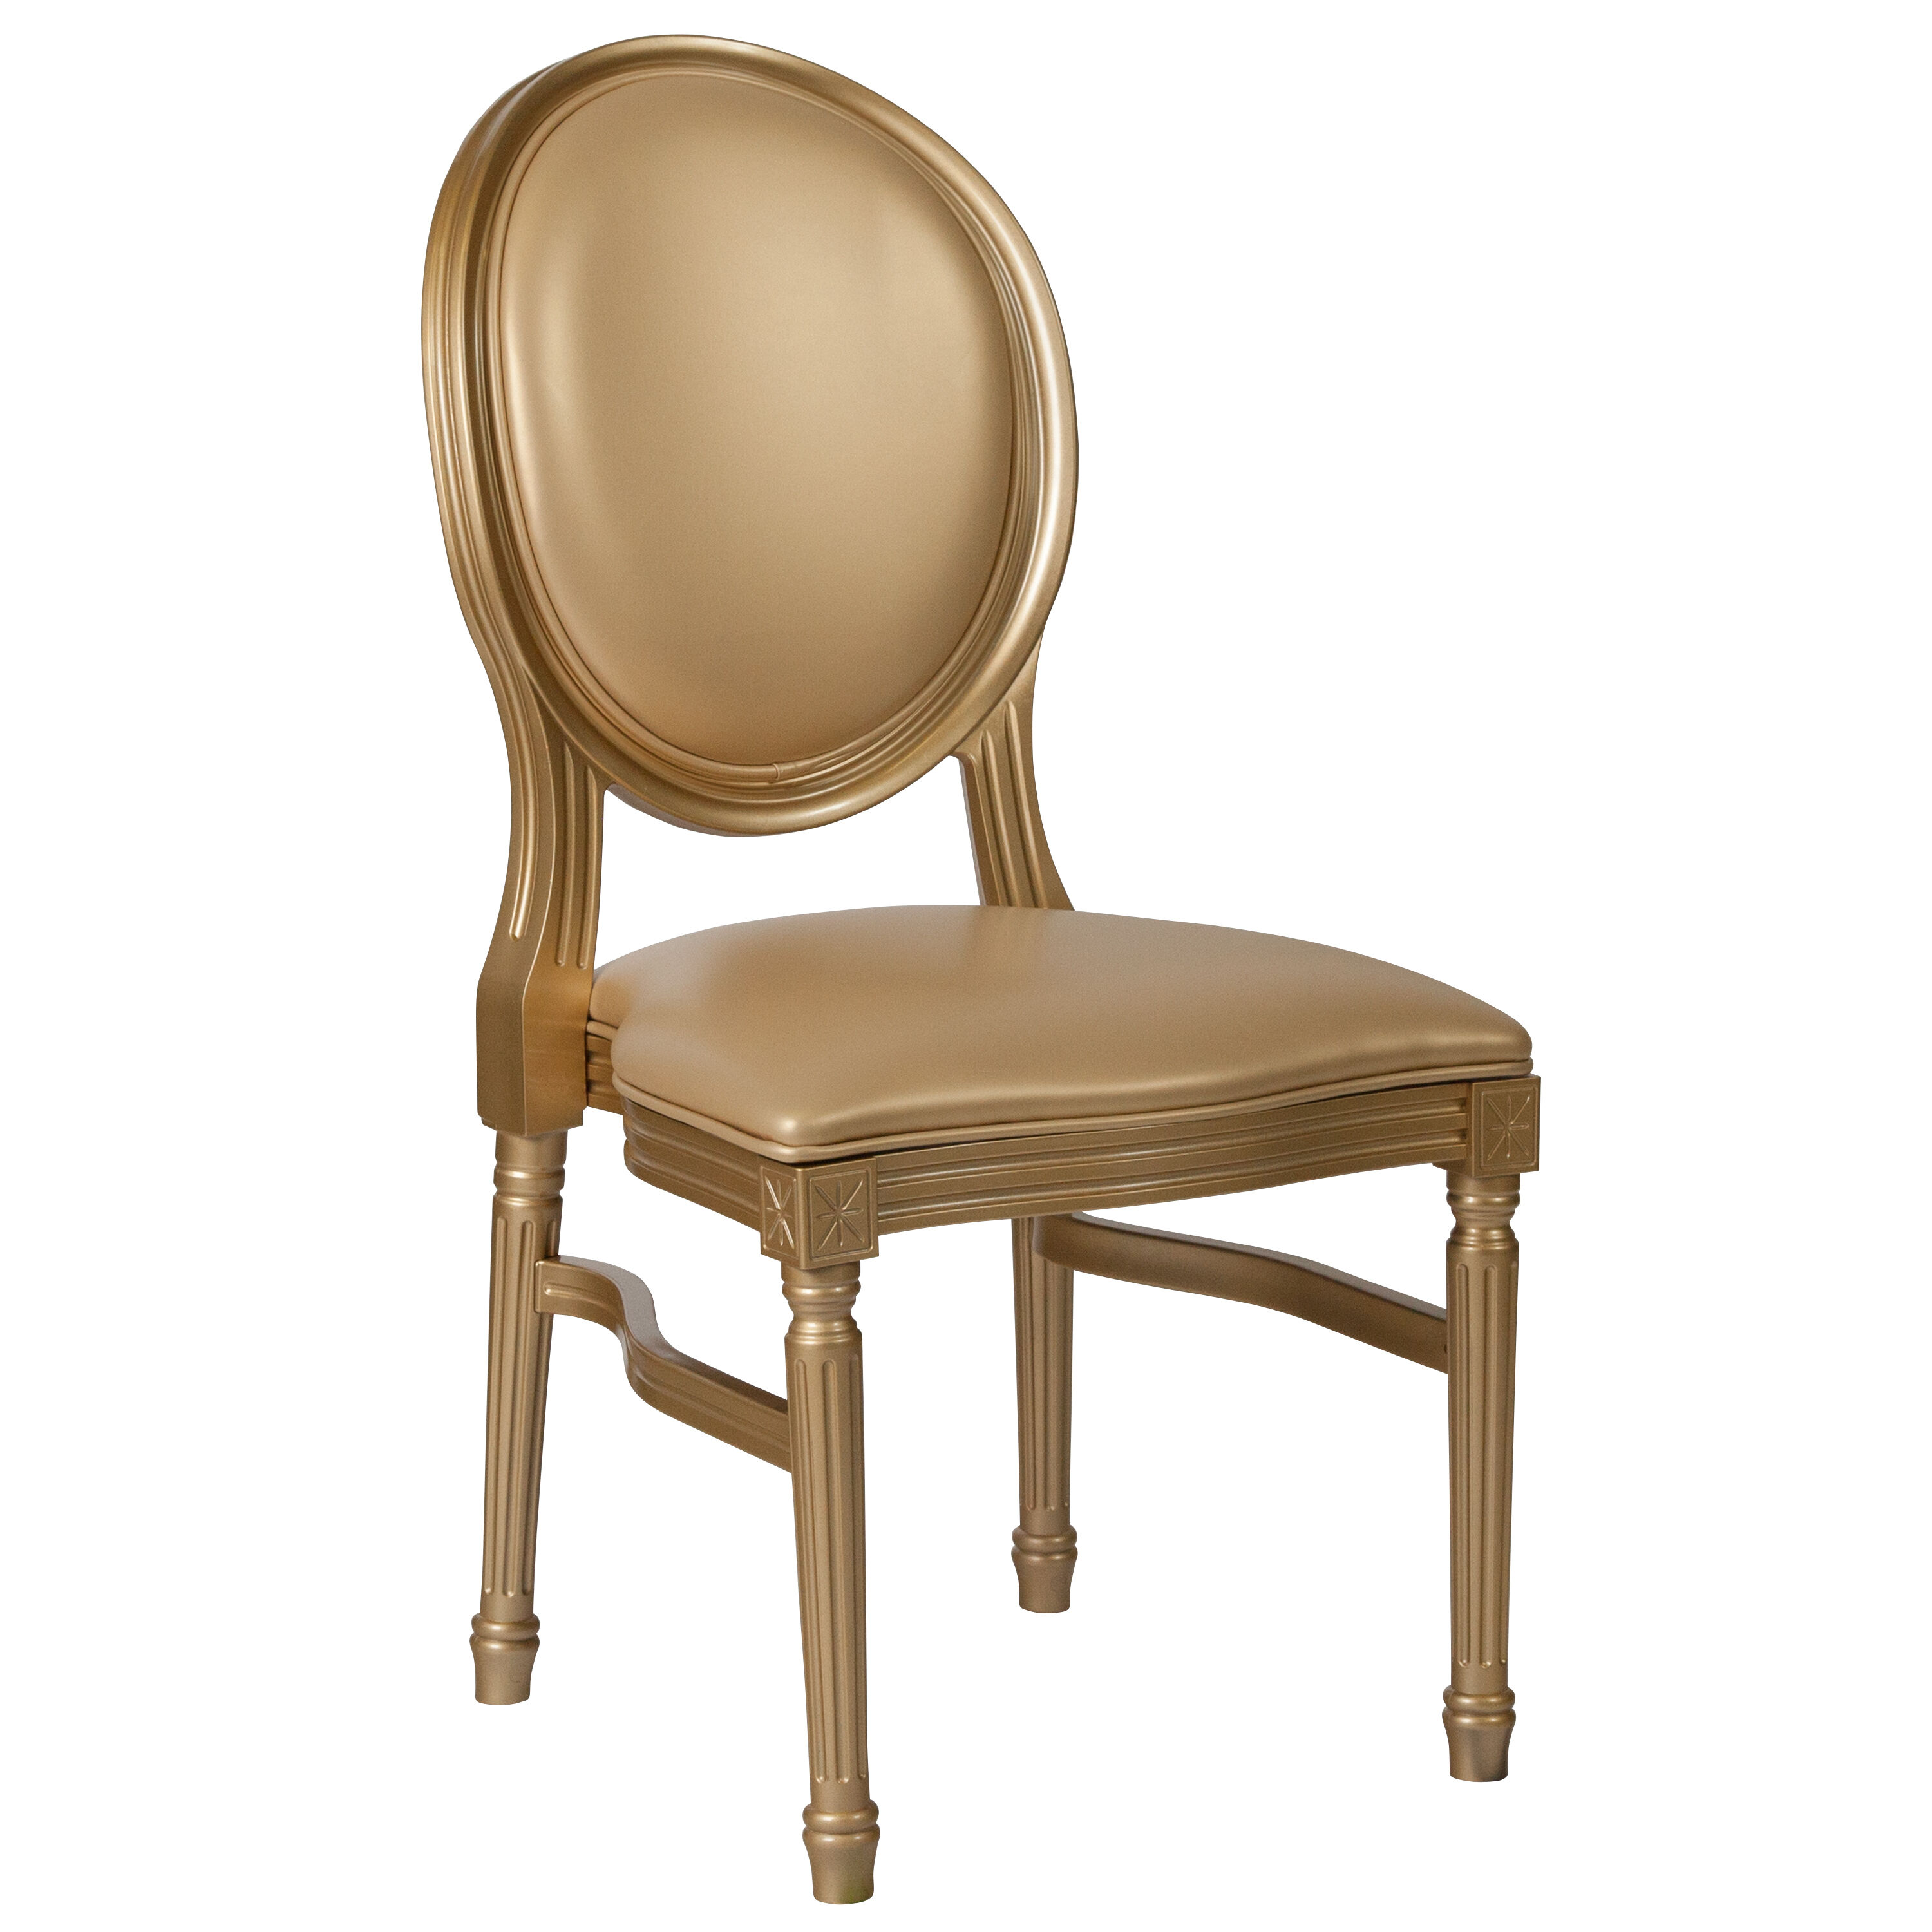 Attirant Capacity King Louis Chair With Gold Vinyl Back And Seat ...